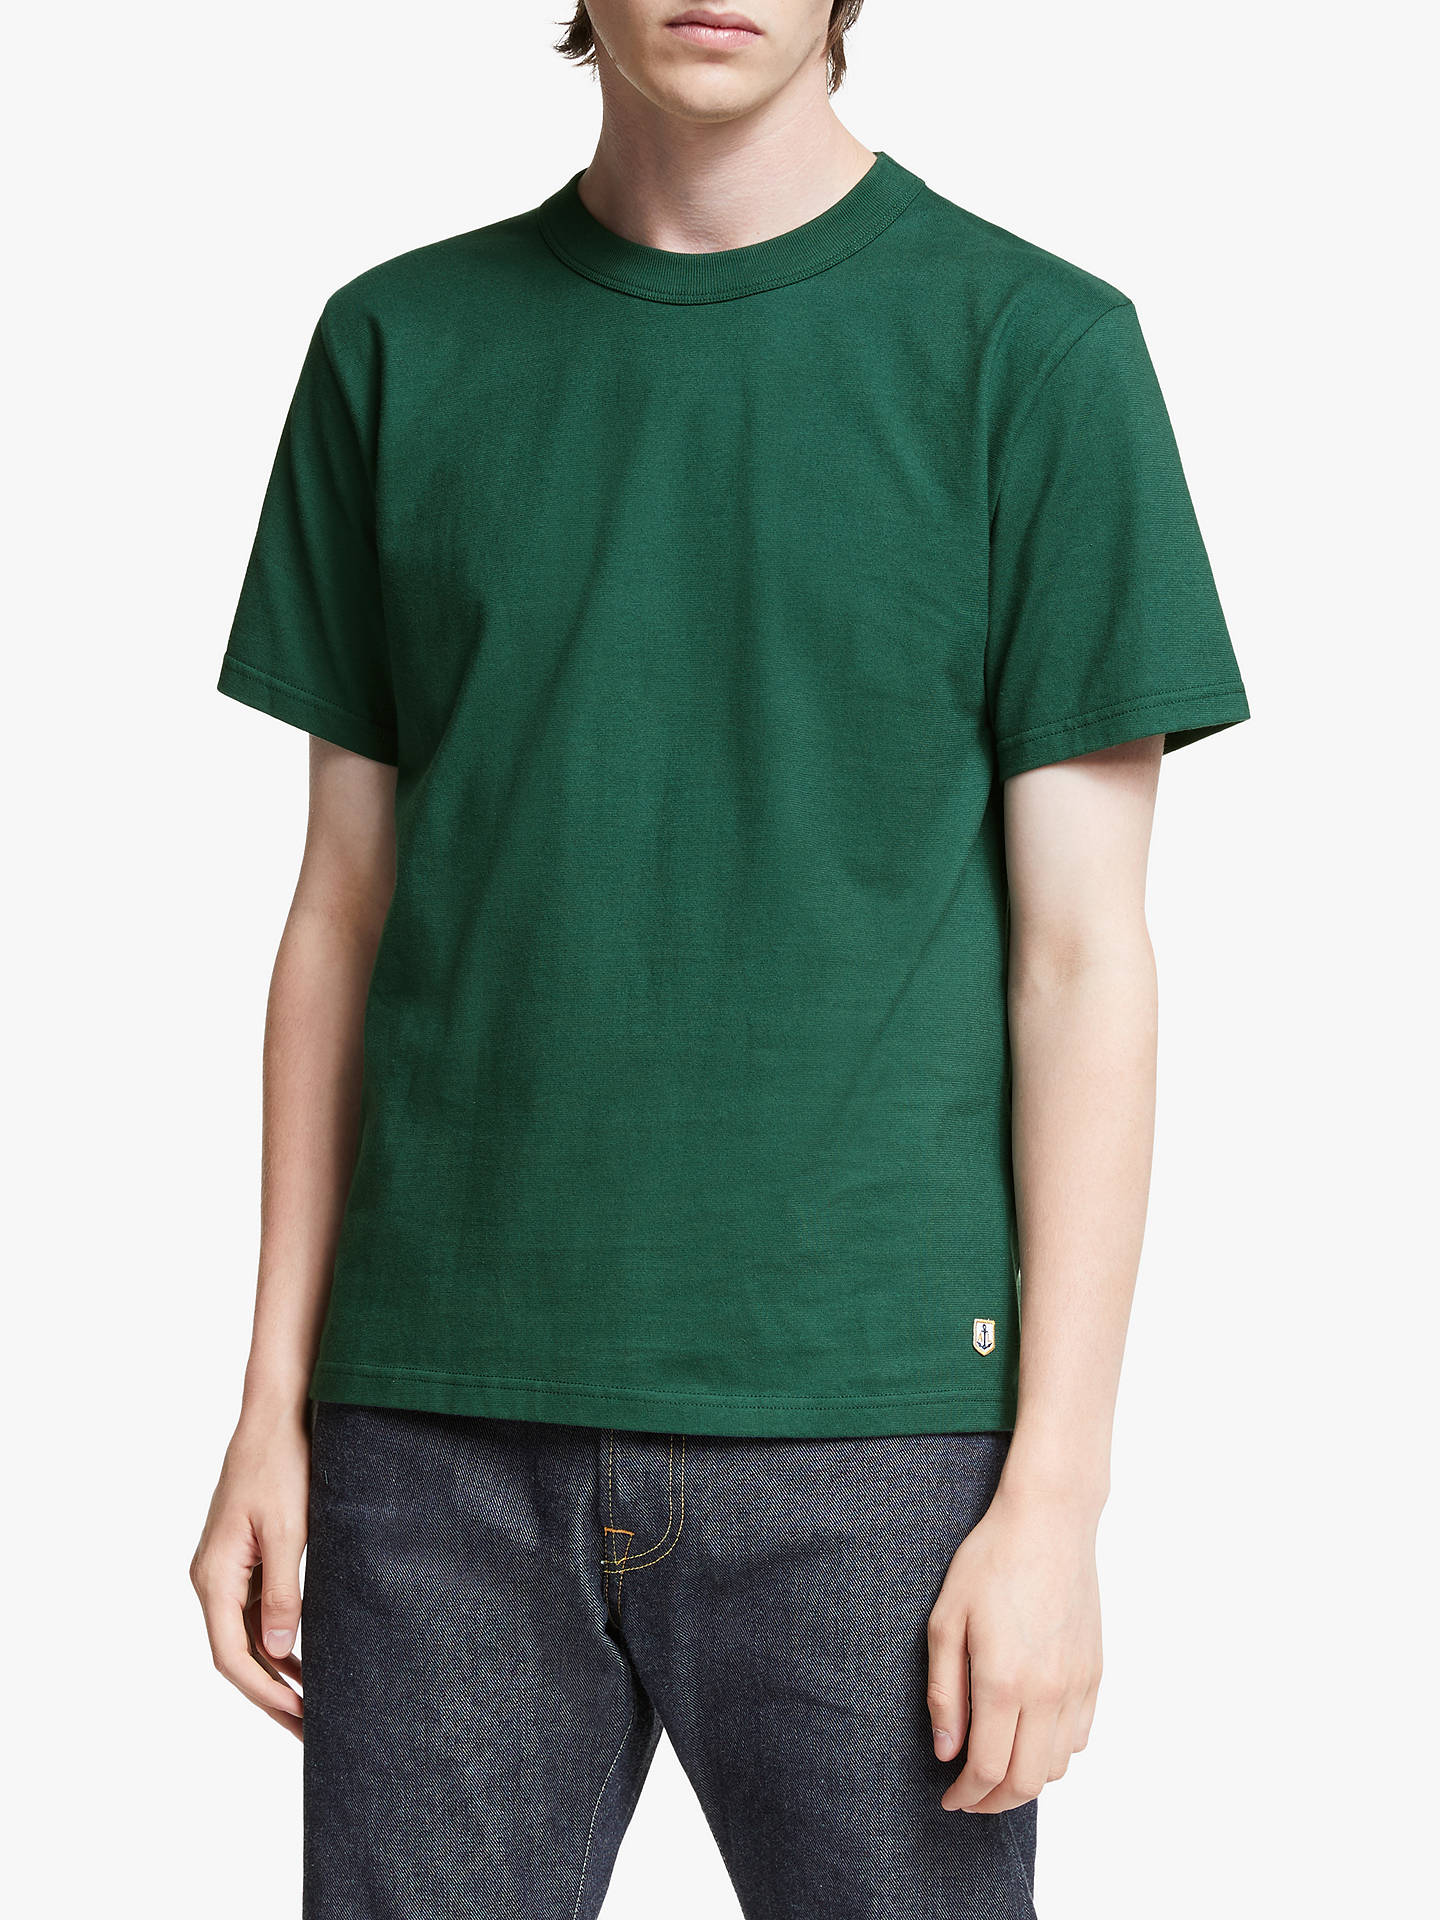 Under Armor Boys Any Court Any Time T-Shirt